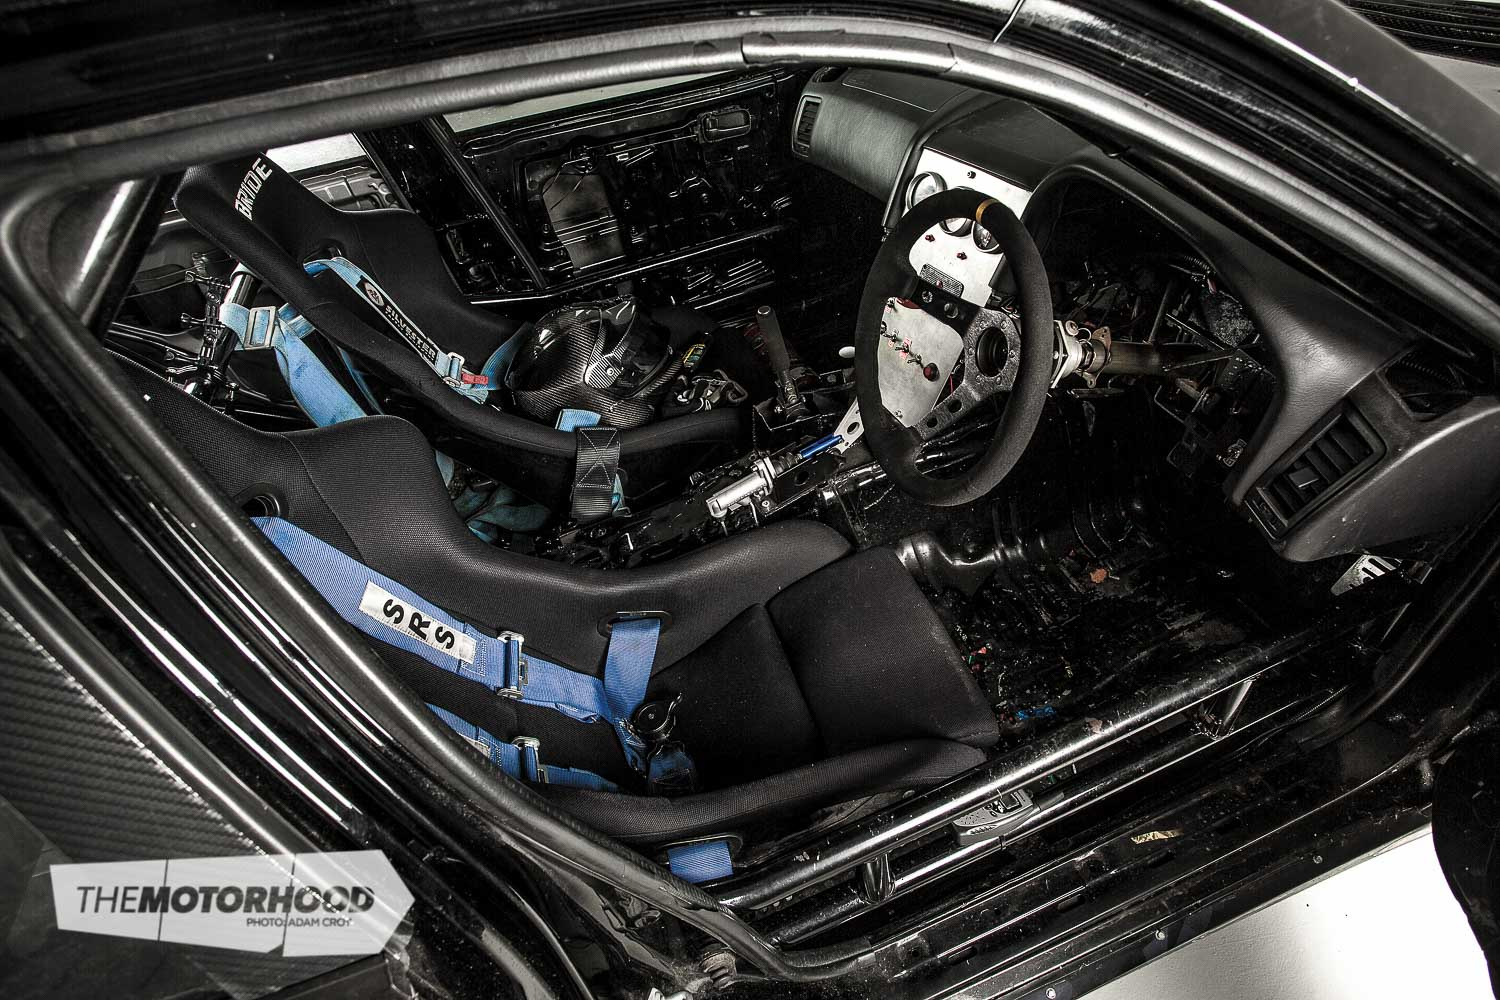 Inside it's a workhorse through and through. Darren will upgrade the seats and harness to FIA-spec equipment before Australia due to its differing regulations. He was one of the first drivers to begin wearing a HANS device